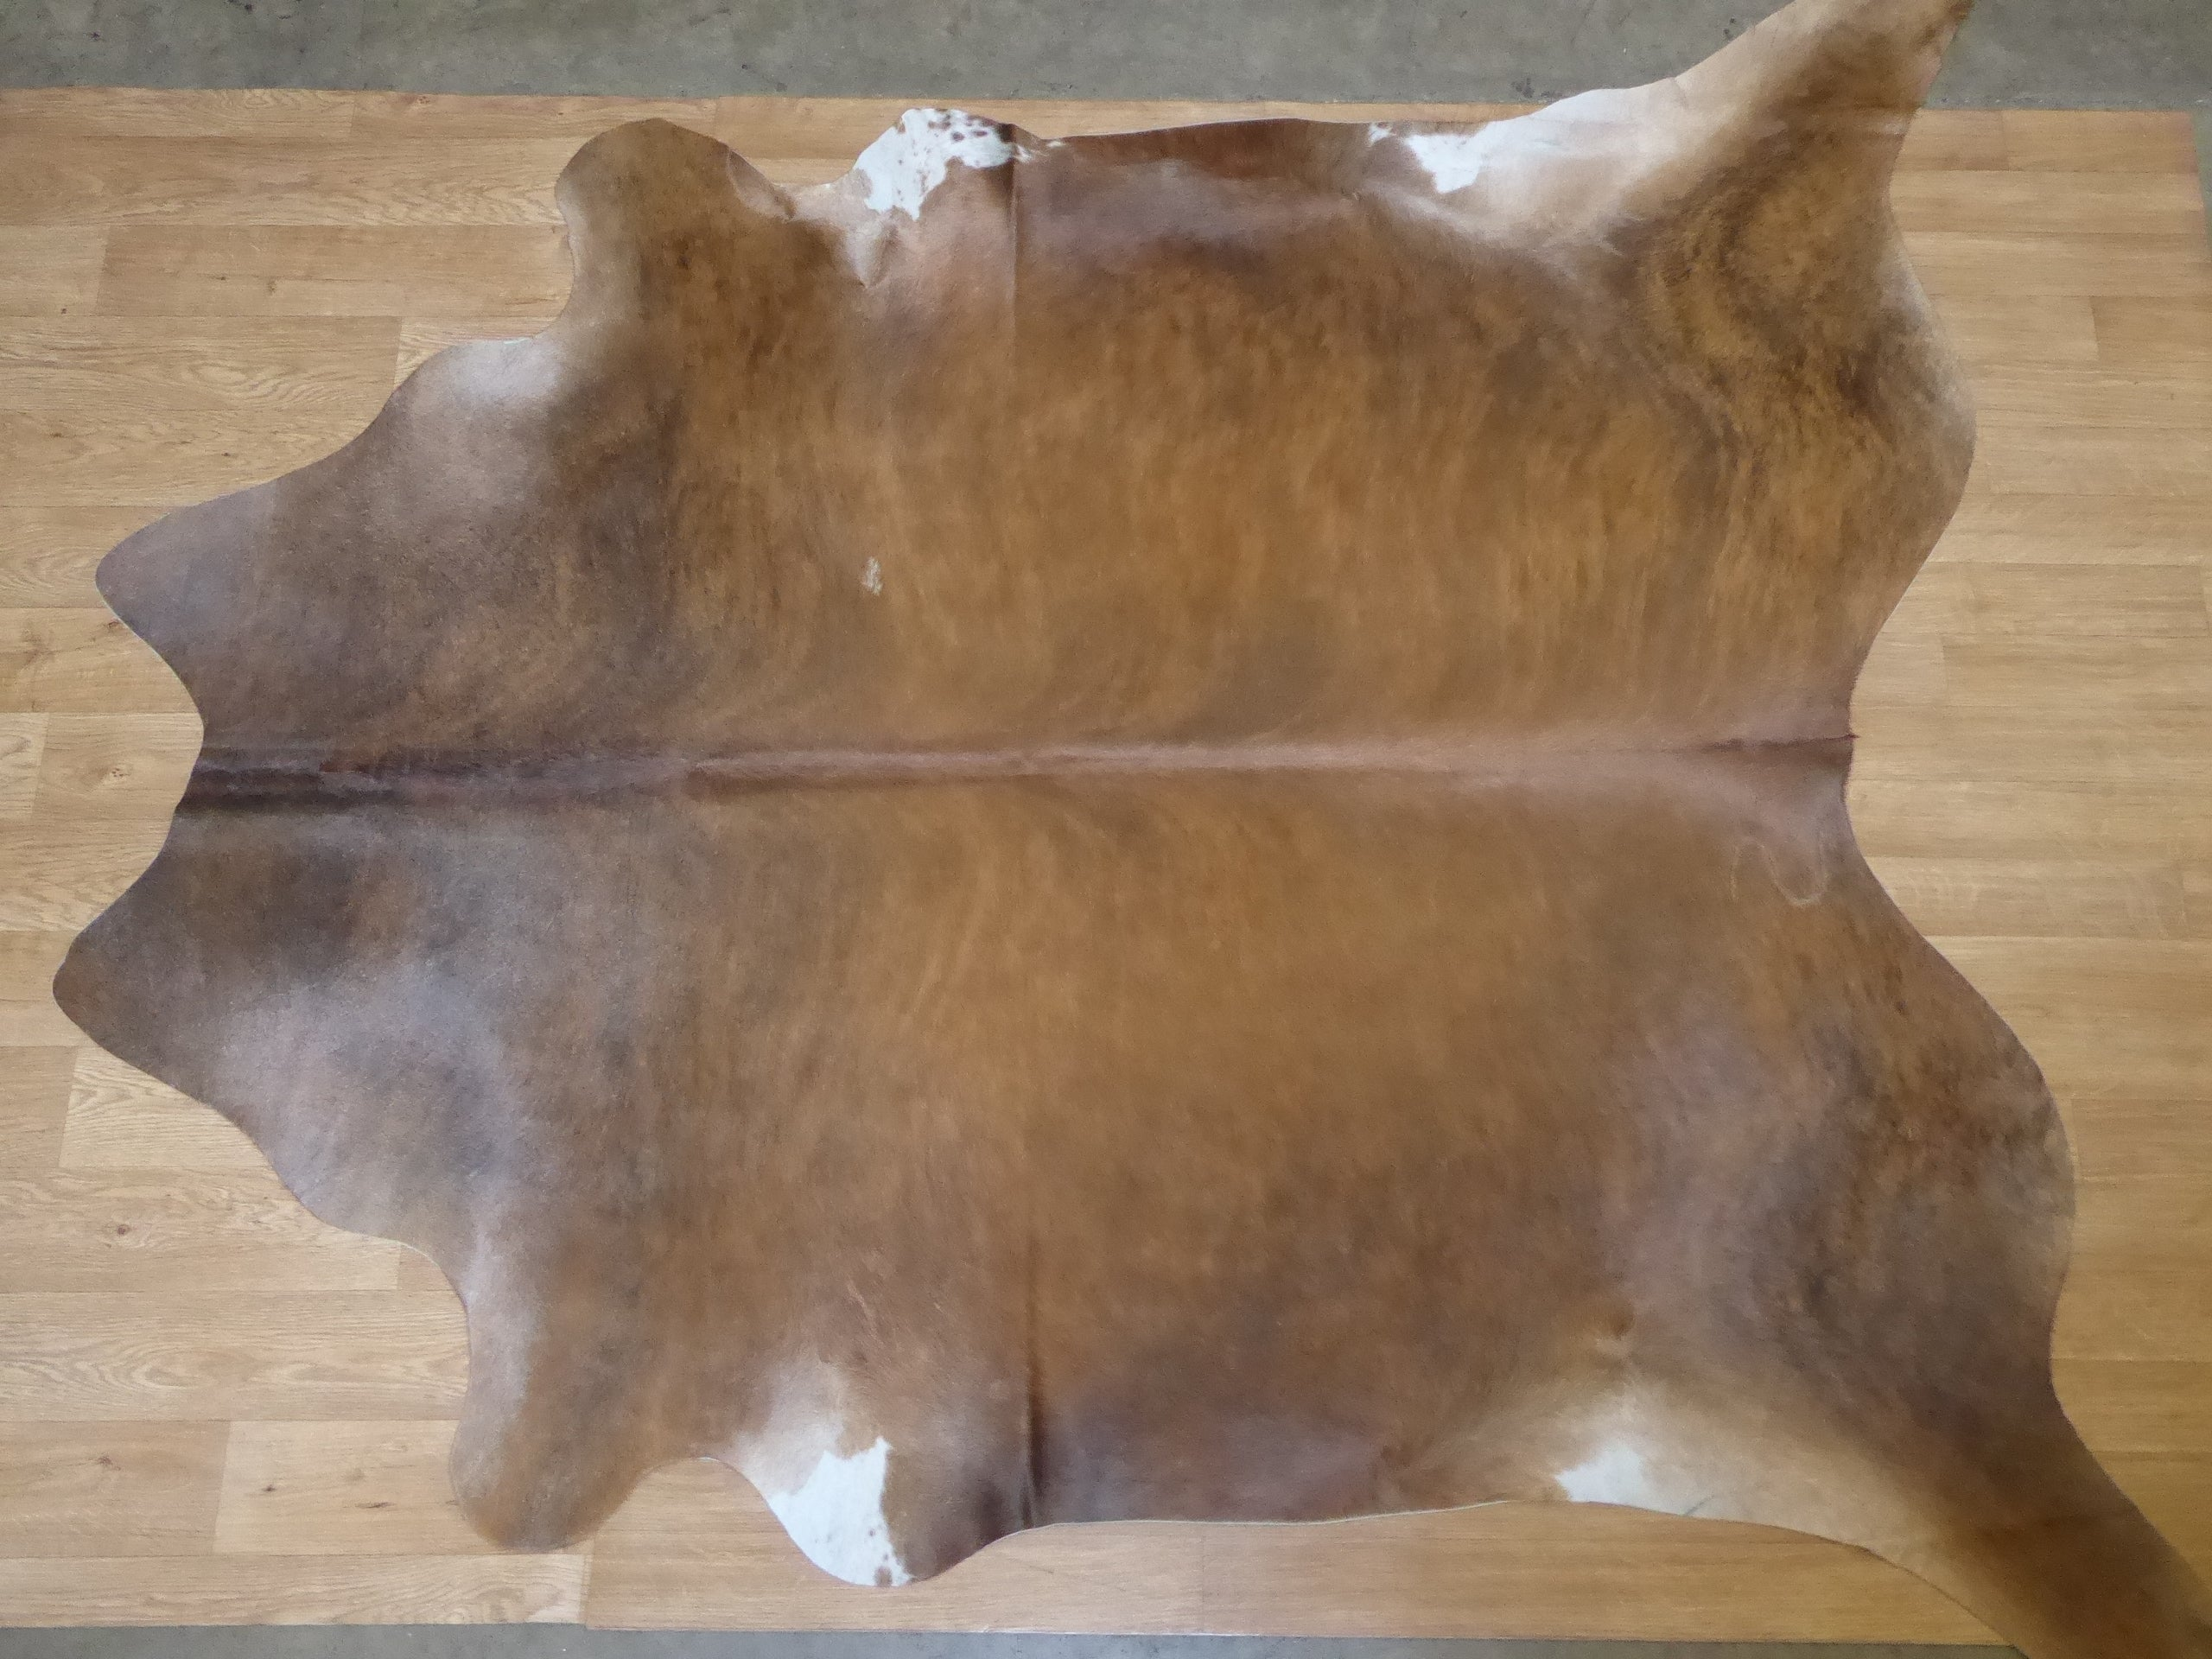 Natural Hair On Cow Hide : This Hide Is Perfect For Wall Hanging, Leather Rugs, Leather Bags & Accessories (pic code 1010997)